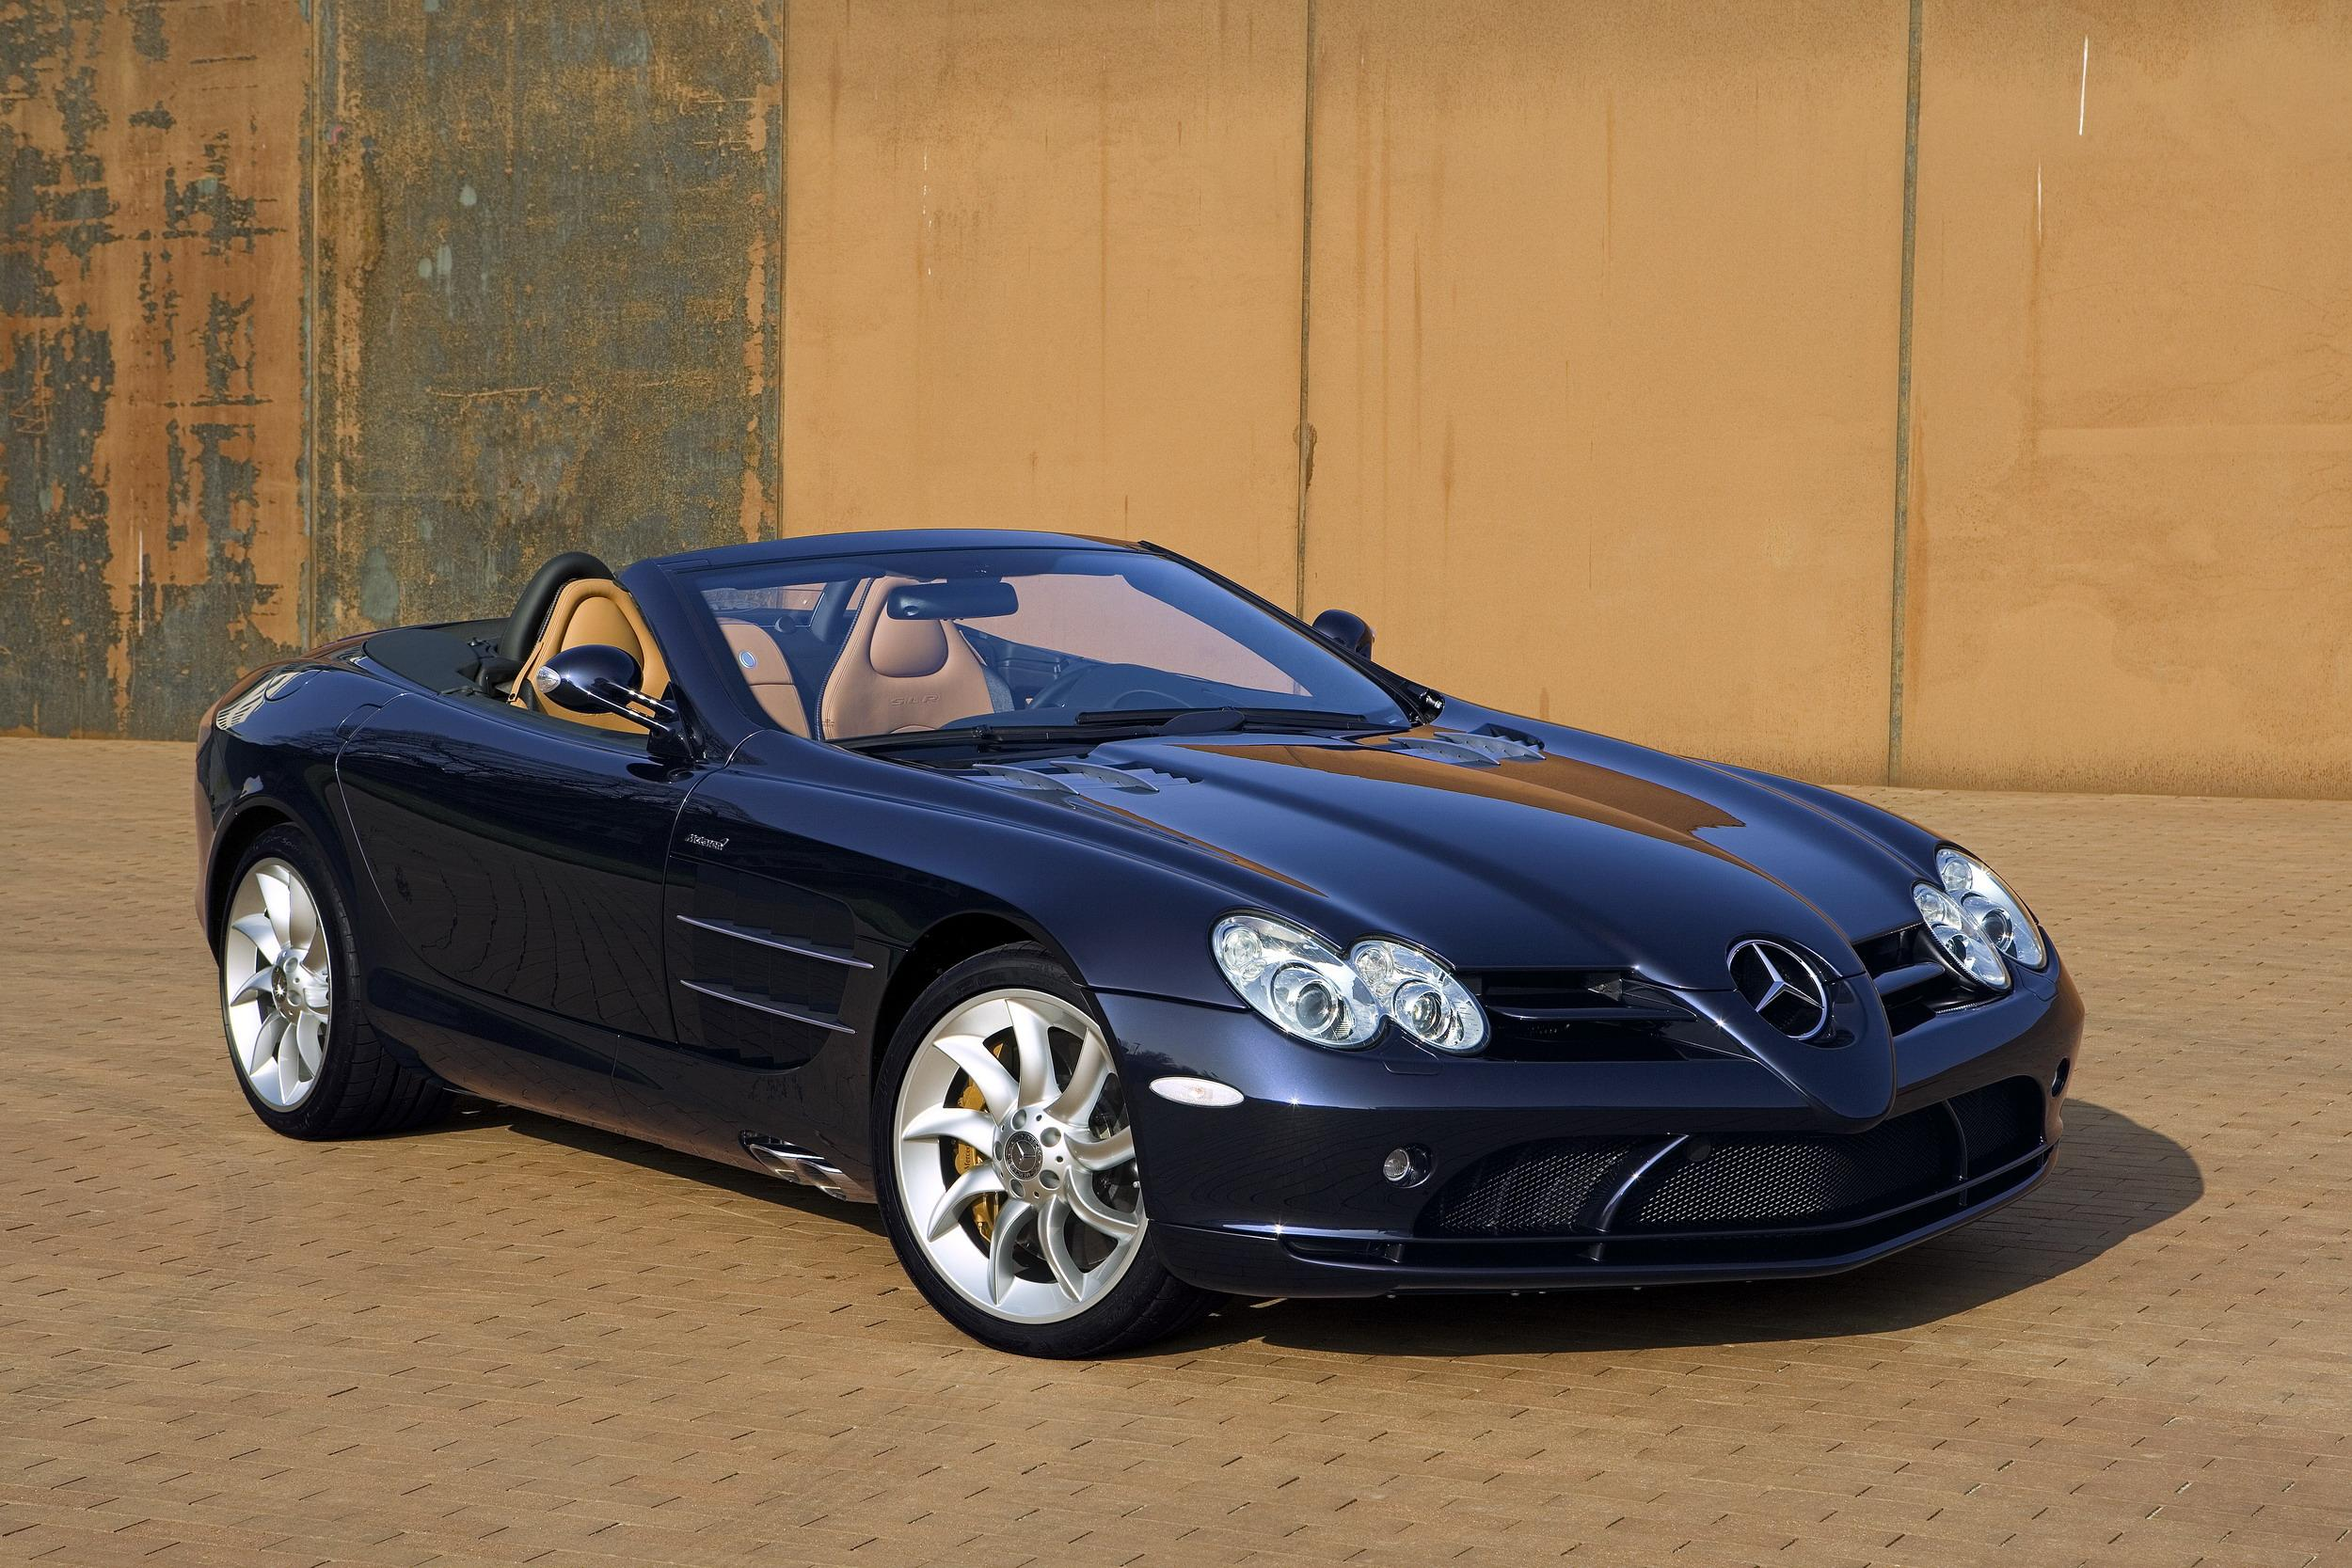 2008 mercedes benz slr mclaren roadster top speed. Black Bedroom Furniture Sets. Home Design Ideas